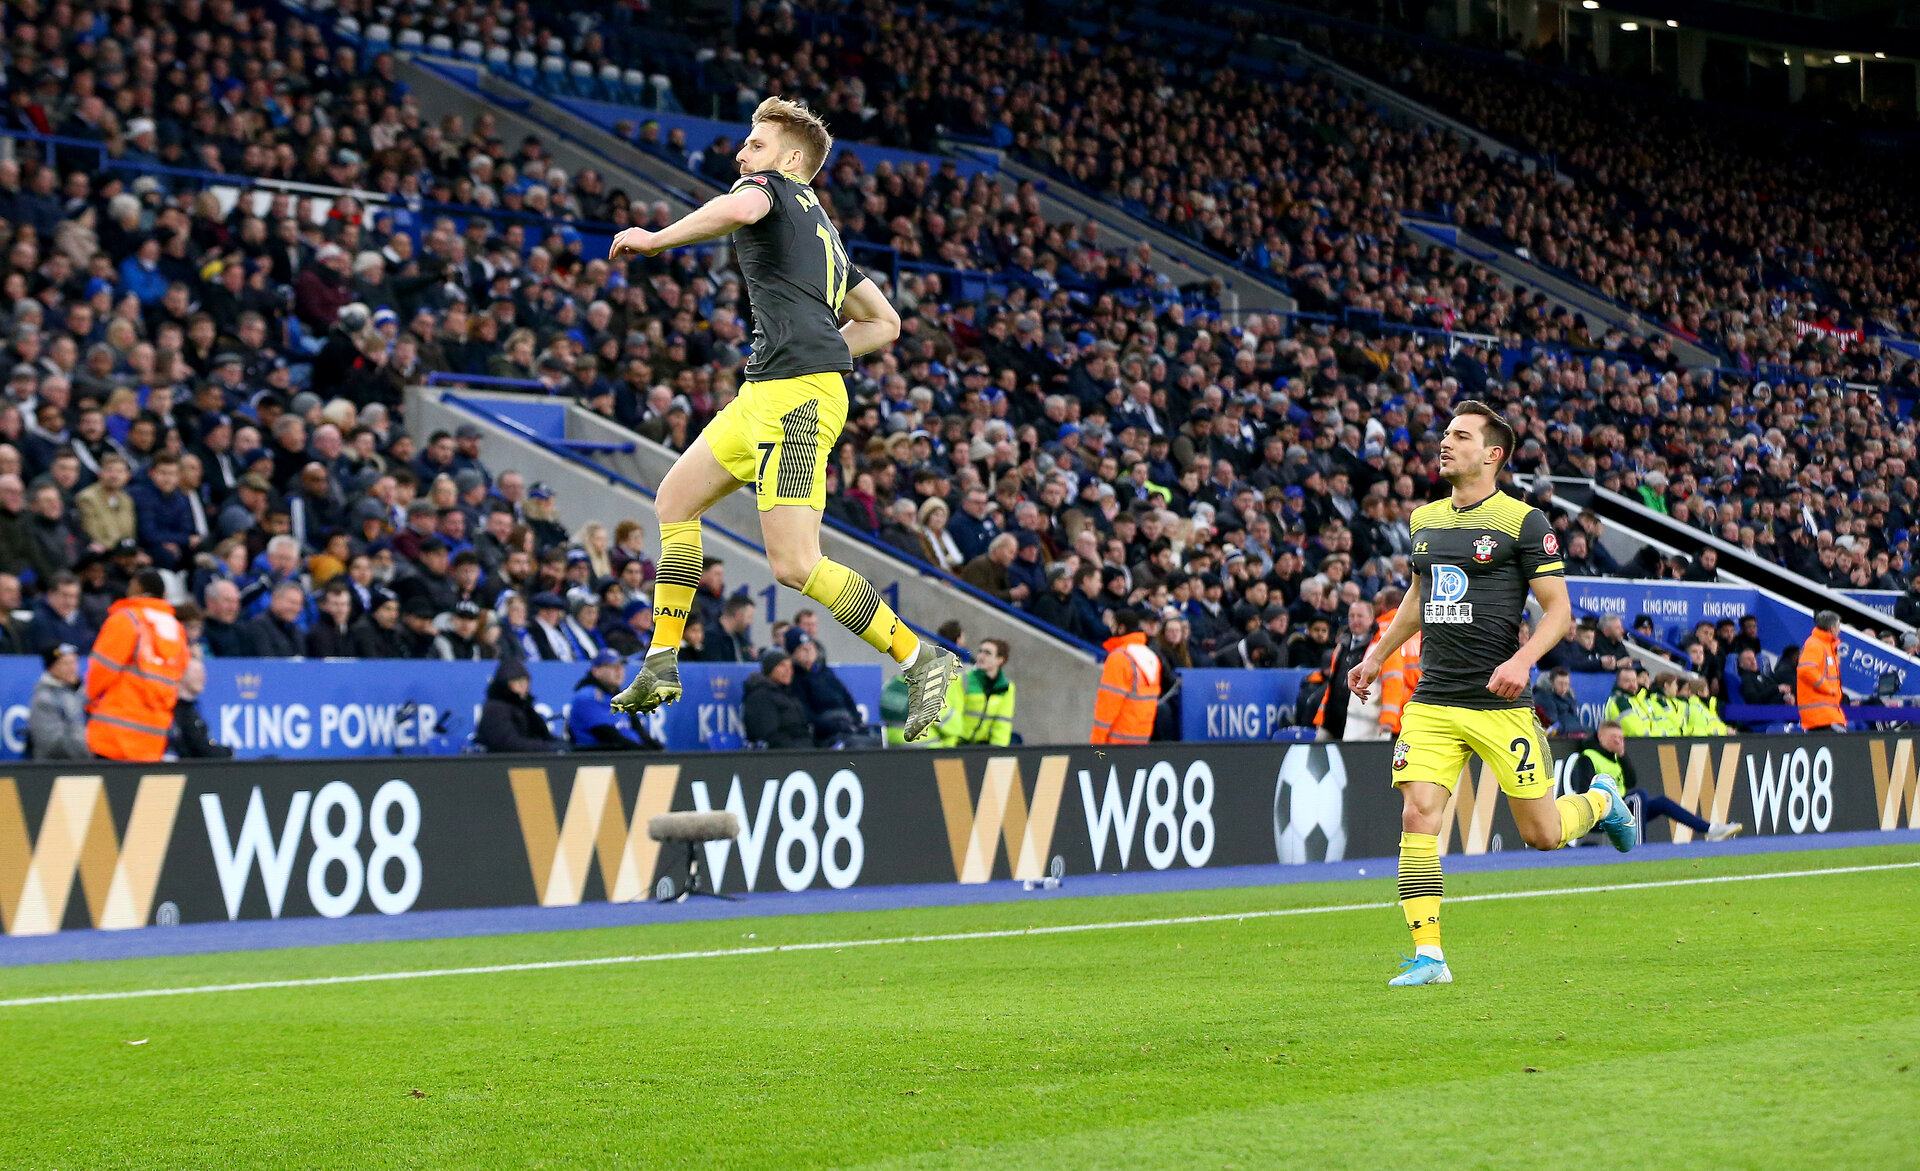 LEICESTER, ENGLAND - JANUARY 11: Stuart Armstrong of Southampton celebrates after making it 1-1 during the Premier League match between Leicester City and Southampton FC at The King Power Stadium on January 11, 2020 in Leicester, United Kingdom. (Photo by Matt Watson/Southampton FC via Getty Images)